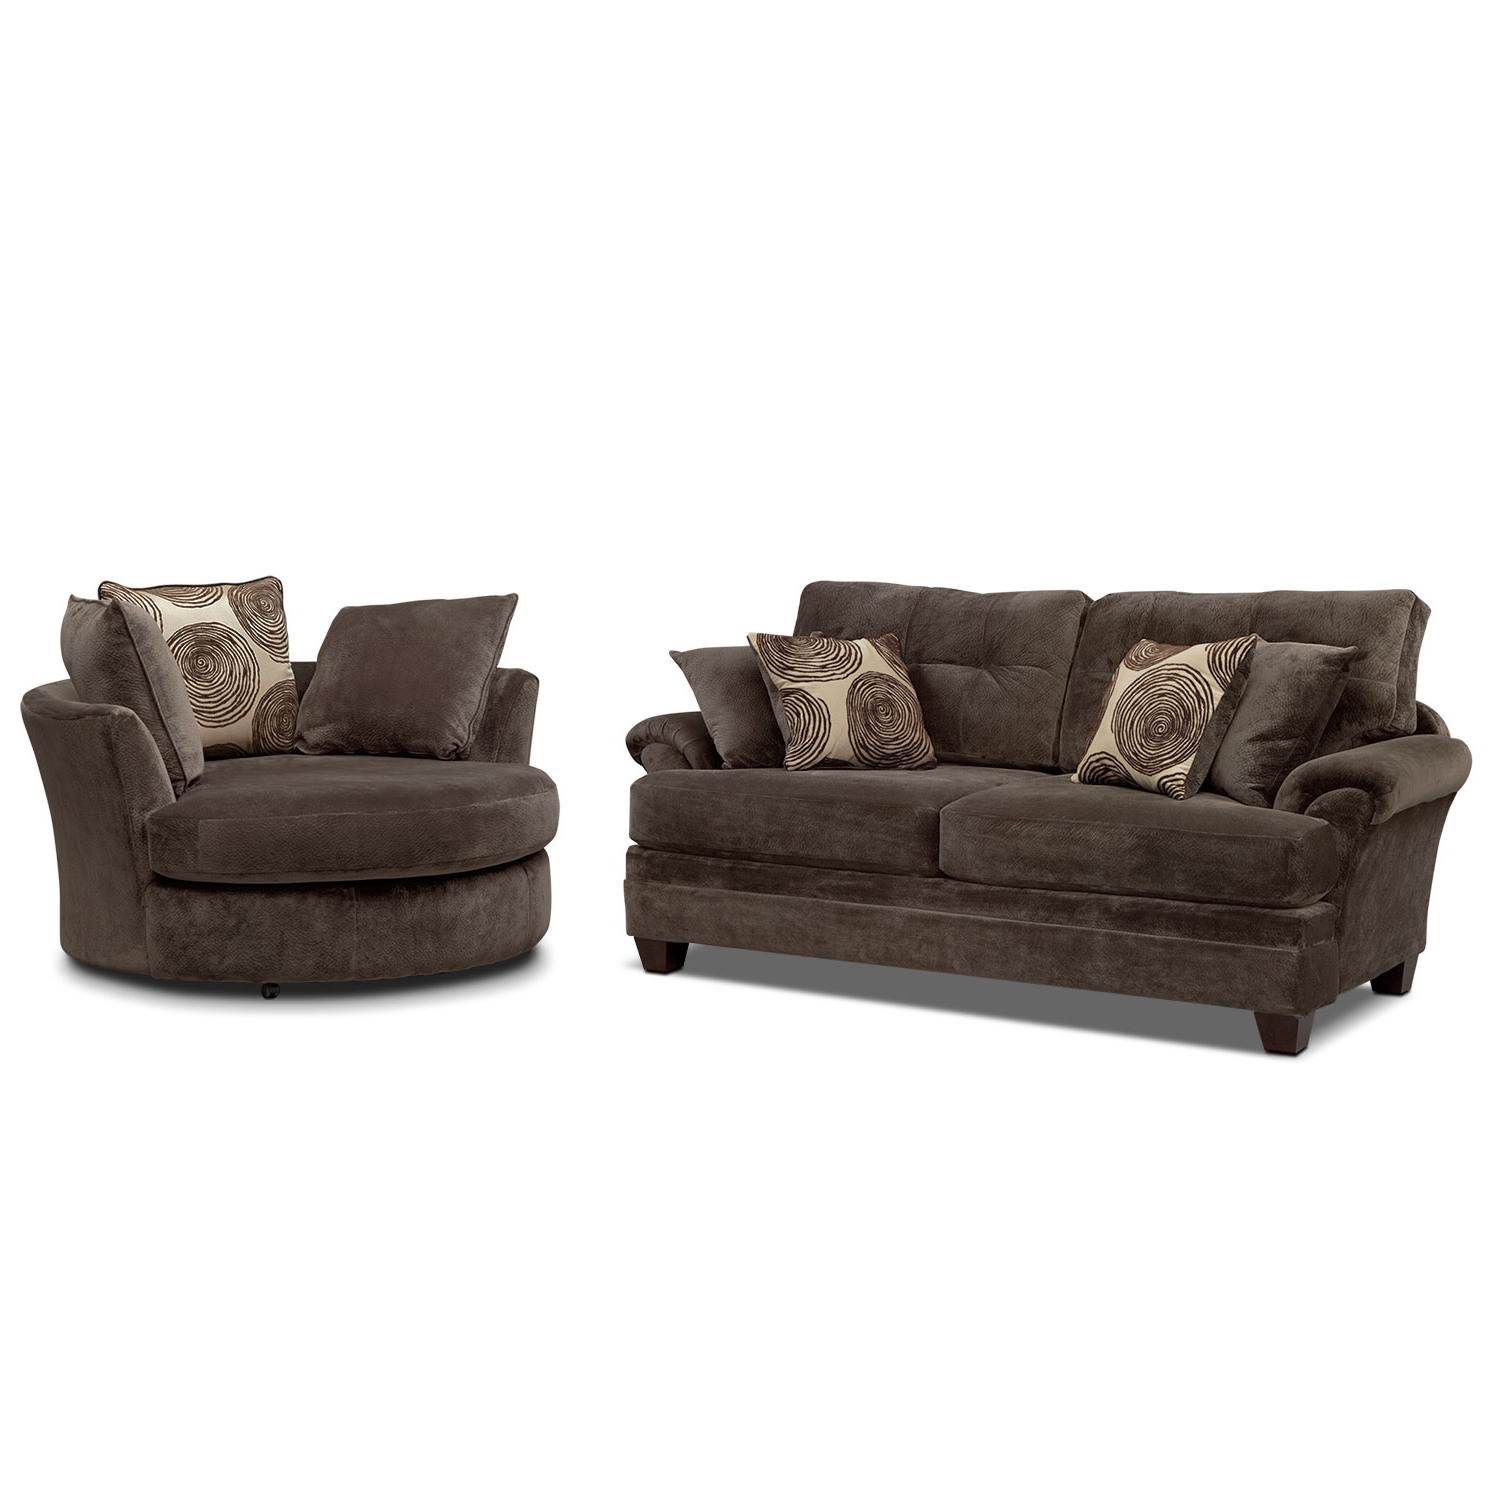 Cordelle Sofa And Swivel Chair Set (View 4 of 20)